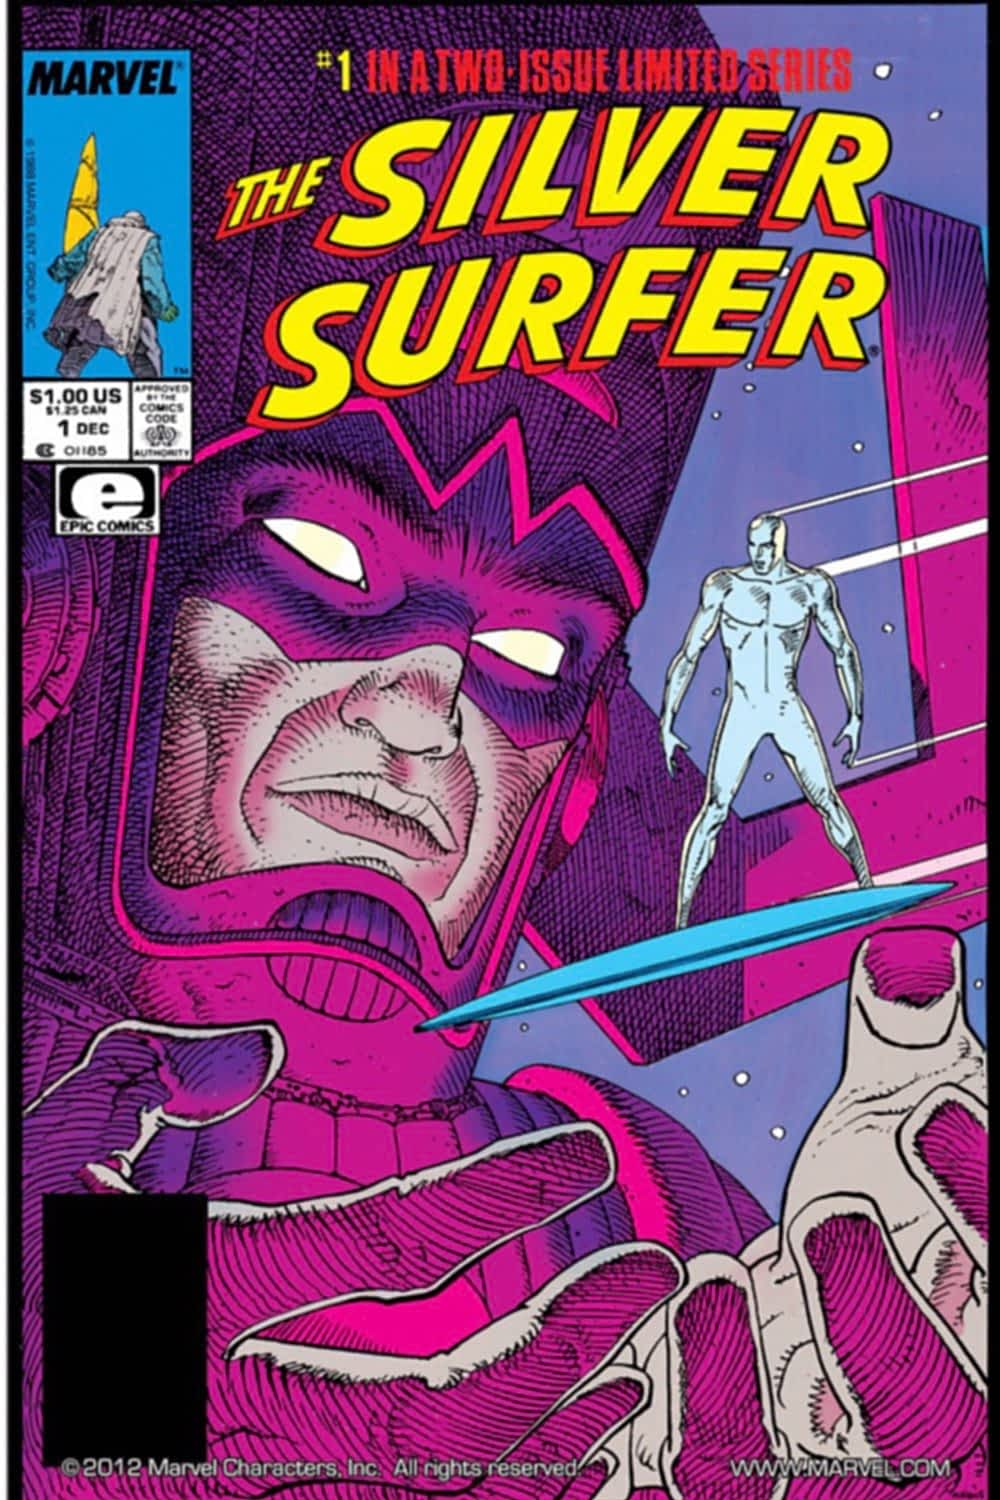 The Silver Surfer: Parable